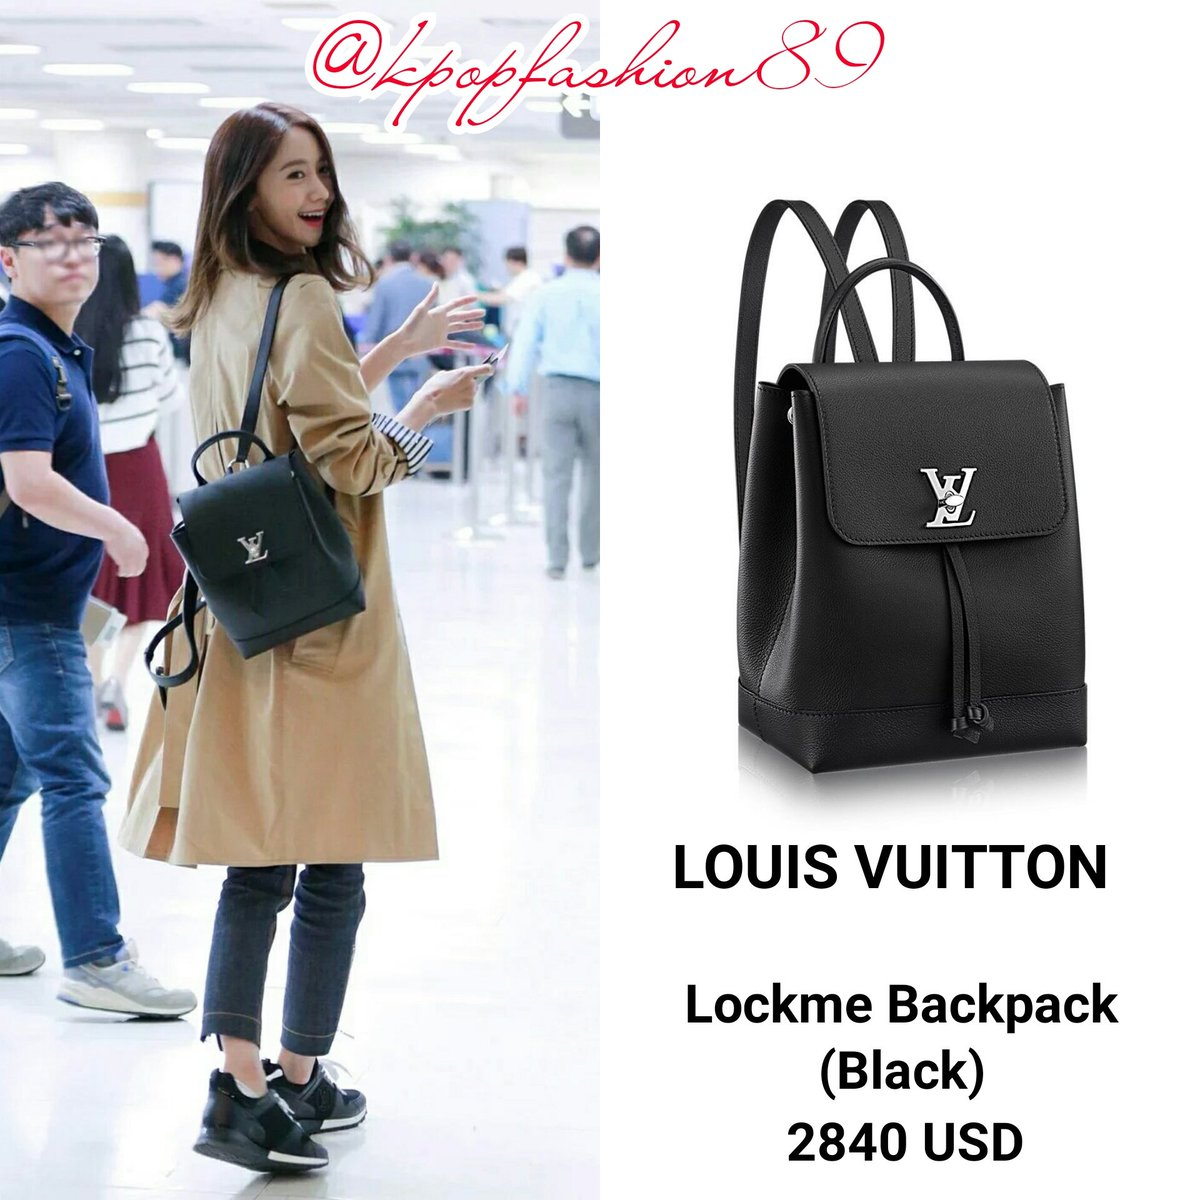 Louis Vuitton Sold Out New Black Lockme Backpack tXTUFdme